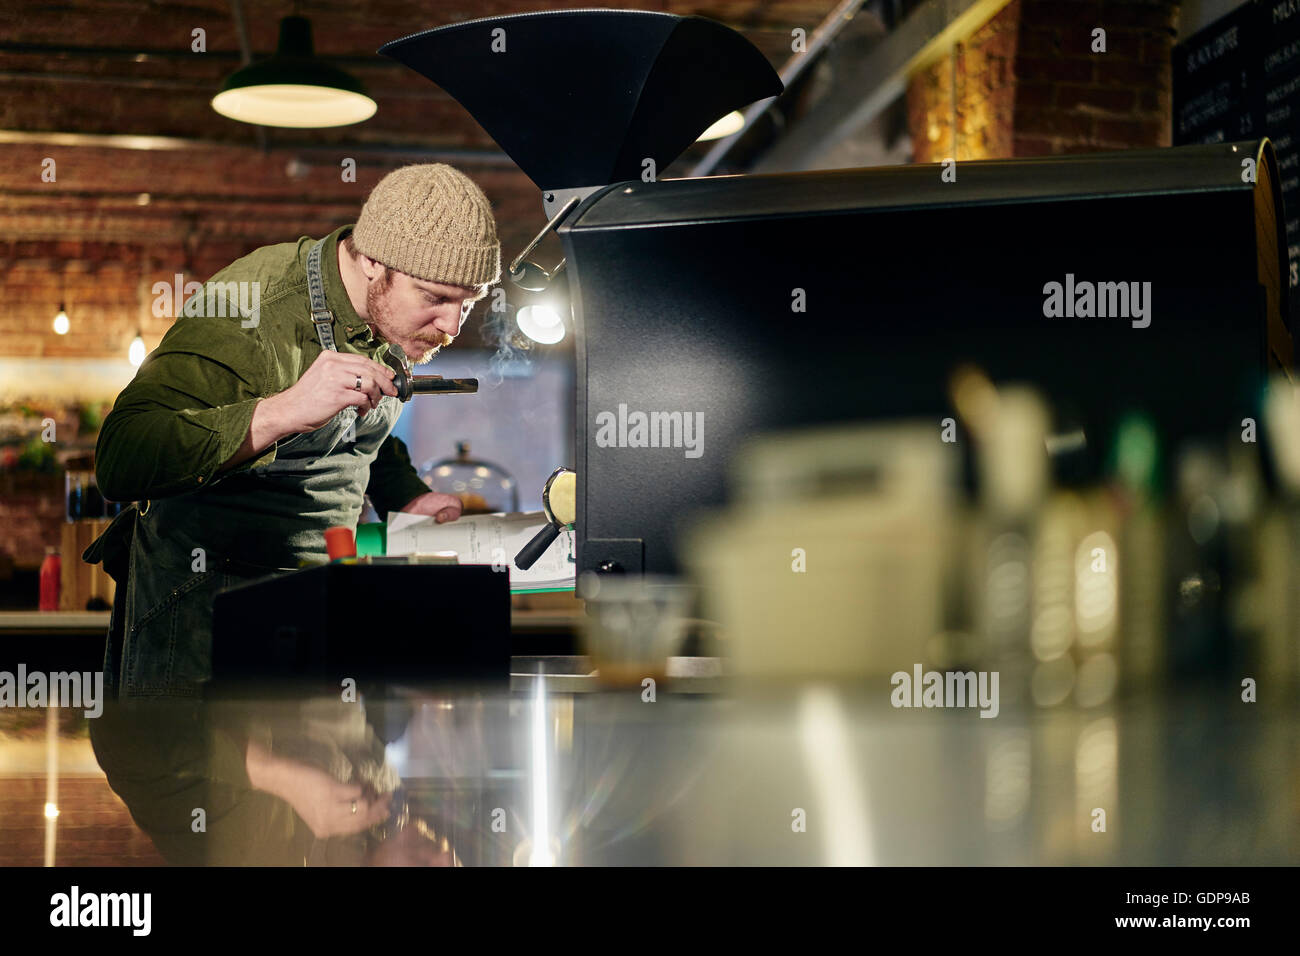 Male coffee shop owner smelling coffee from coffee roaster - Stock Image